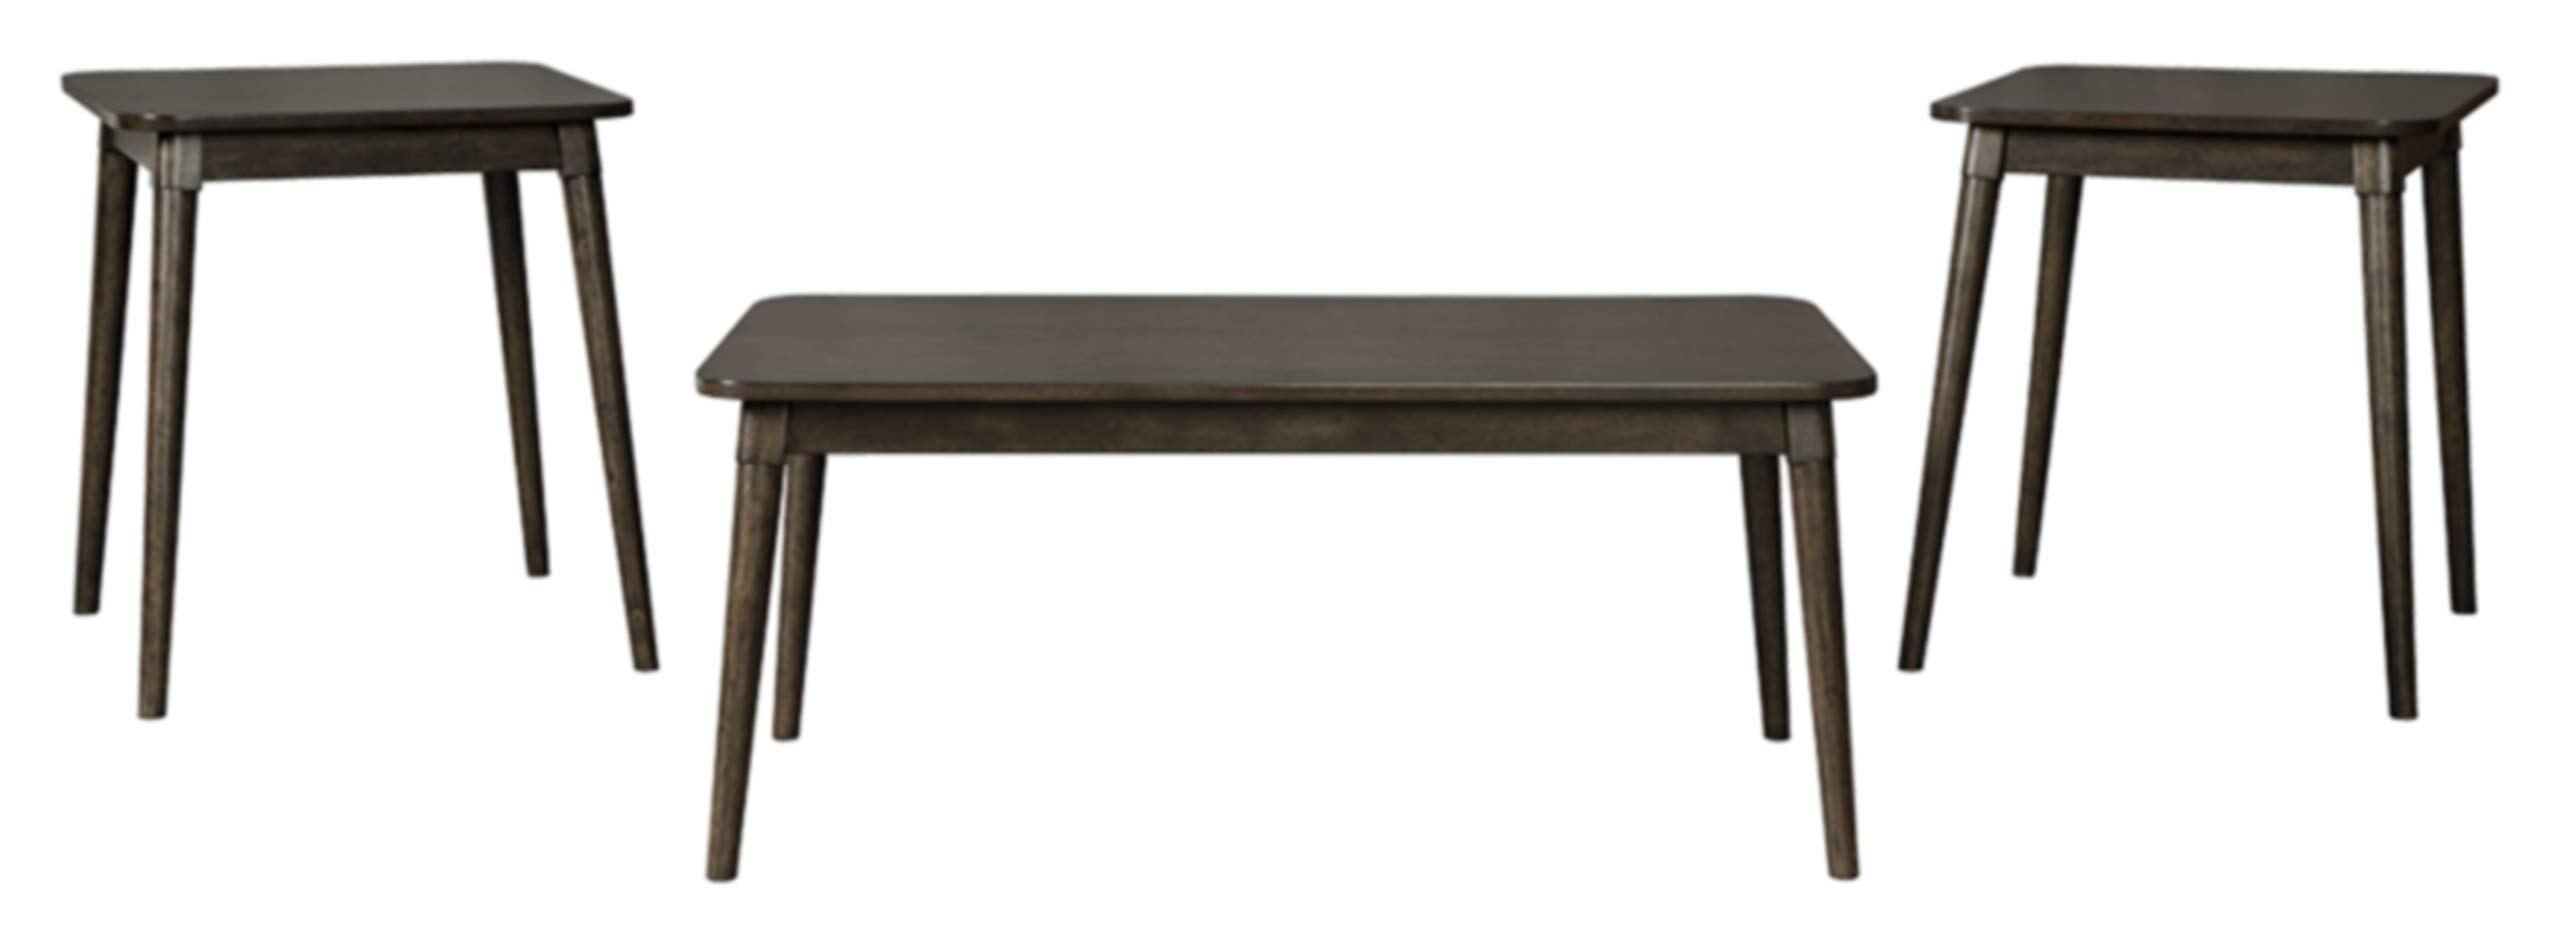 Ashley Furniture Signature Design - Neilmond Occasional Table Set - Set of 3 - Contemporary - Dark Brown by Signature Design by Ashley